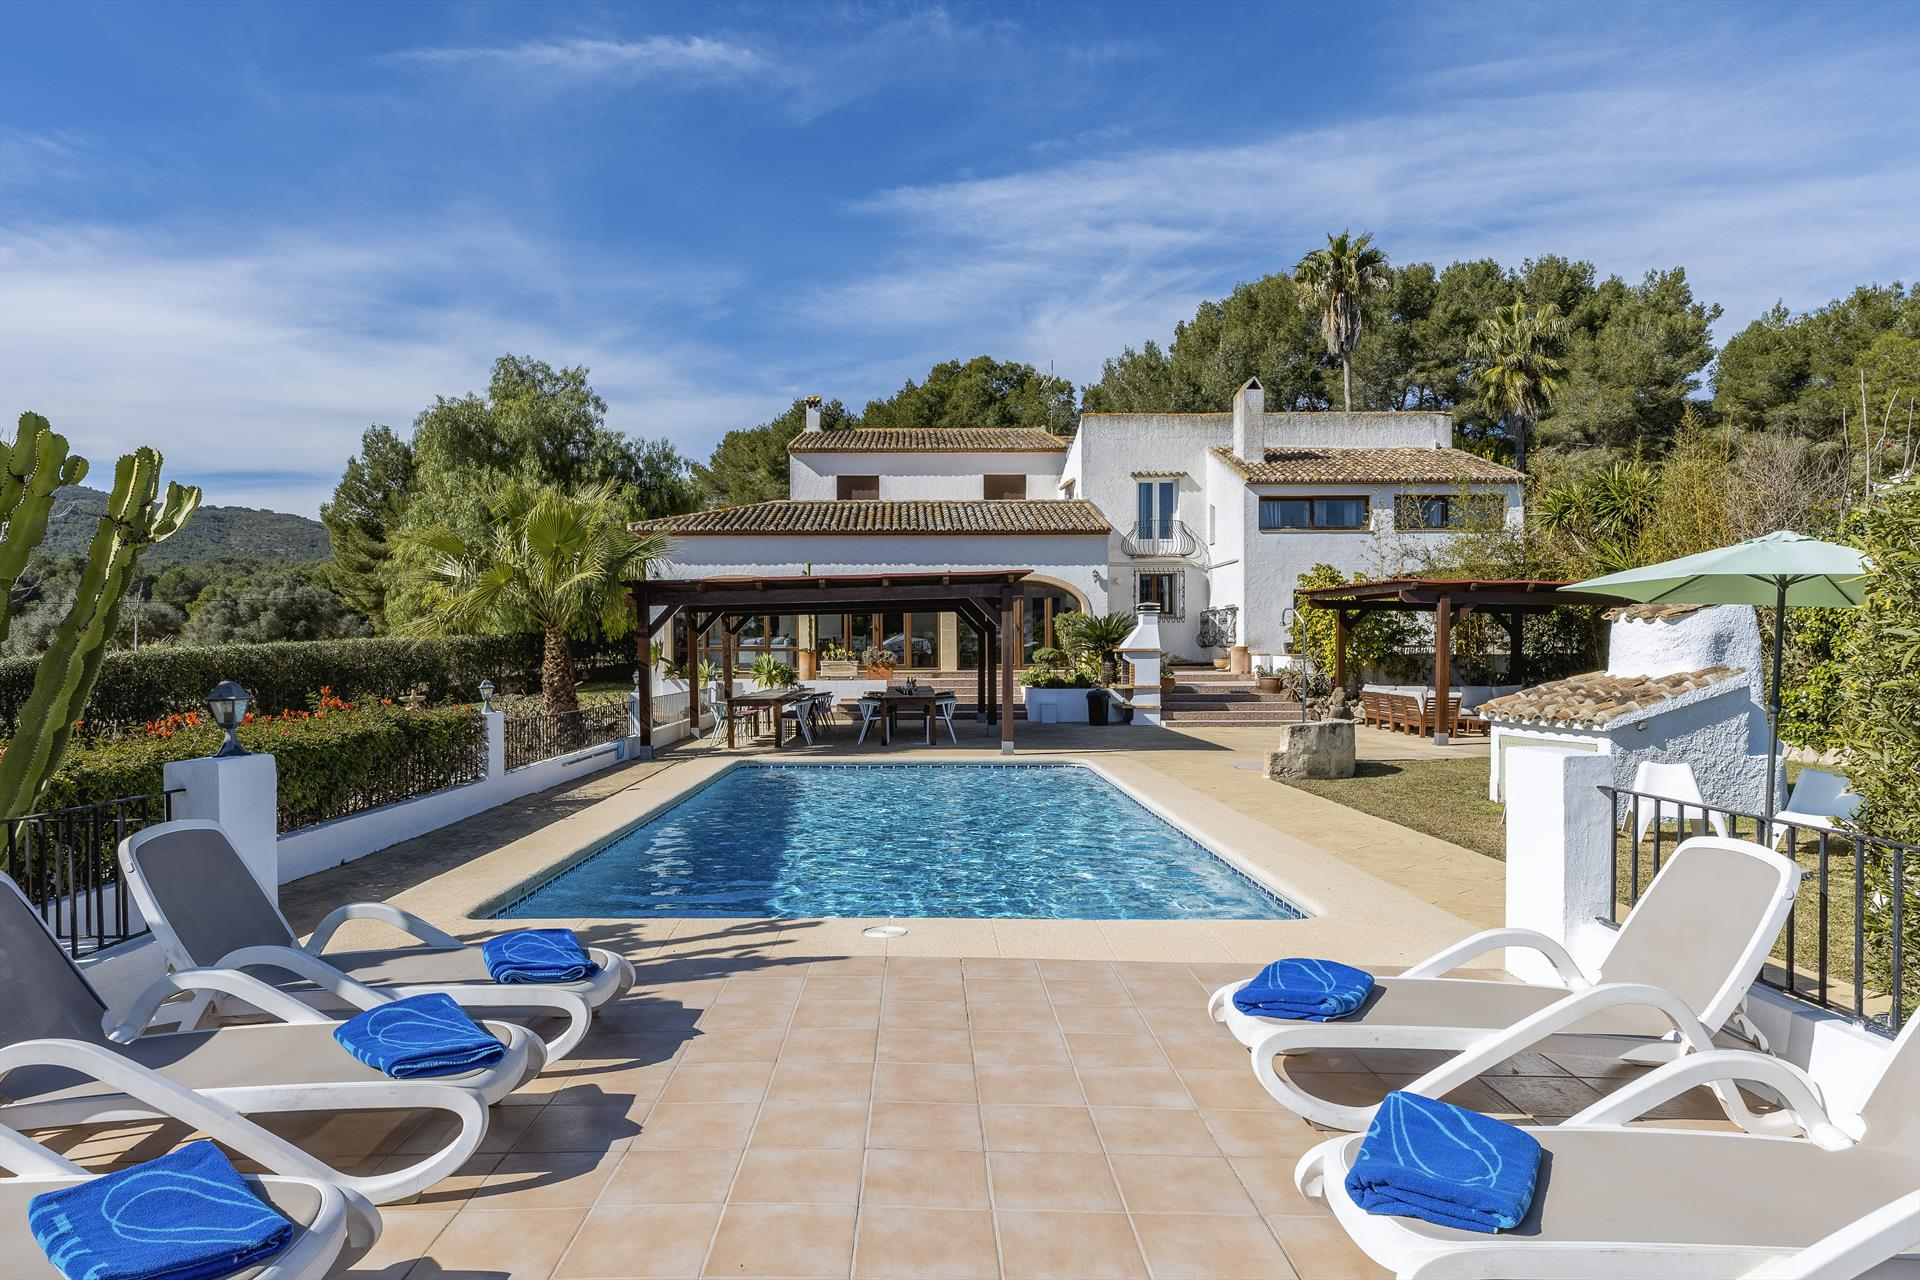 Casa Rosalia 26 pax, Large and comfortable villa in Javea, on the Costa Blanca, Spain  with private pool for 26 persons.....